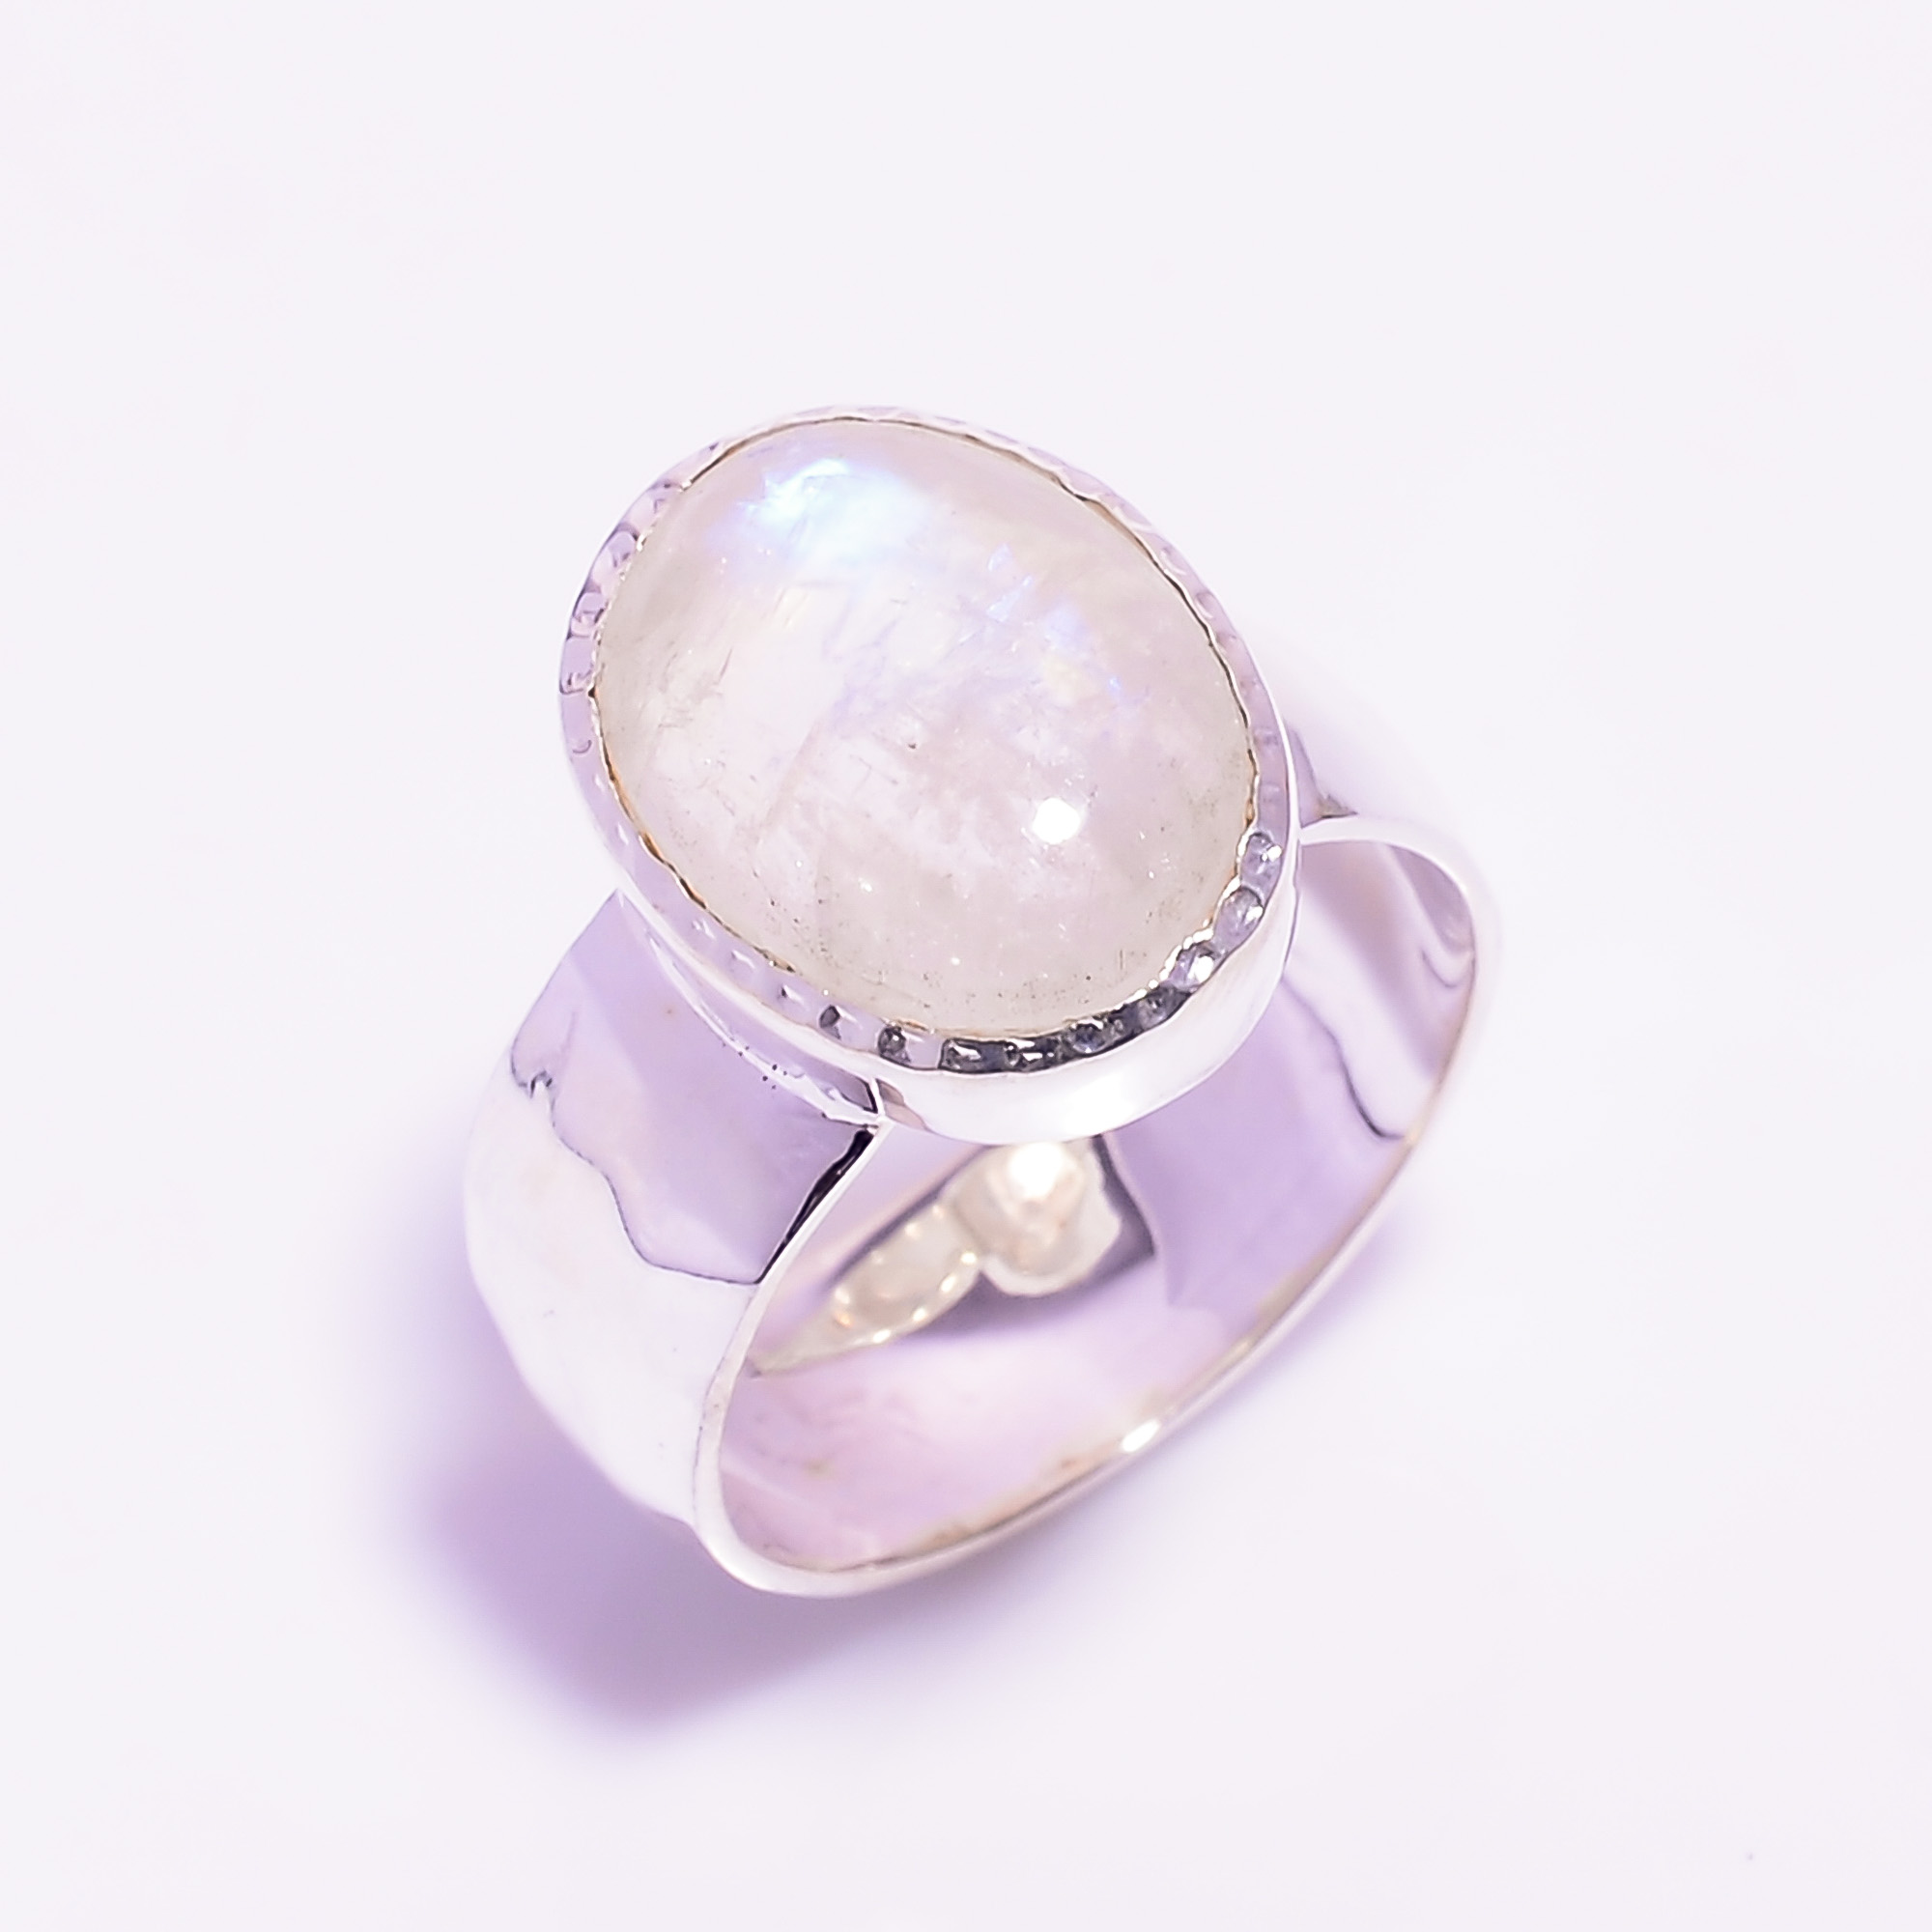 Rainbow Moonstone 925 Sterling Silver Hammered Ring Size US 7